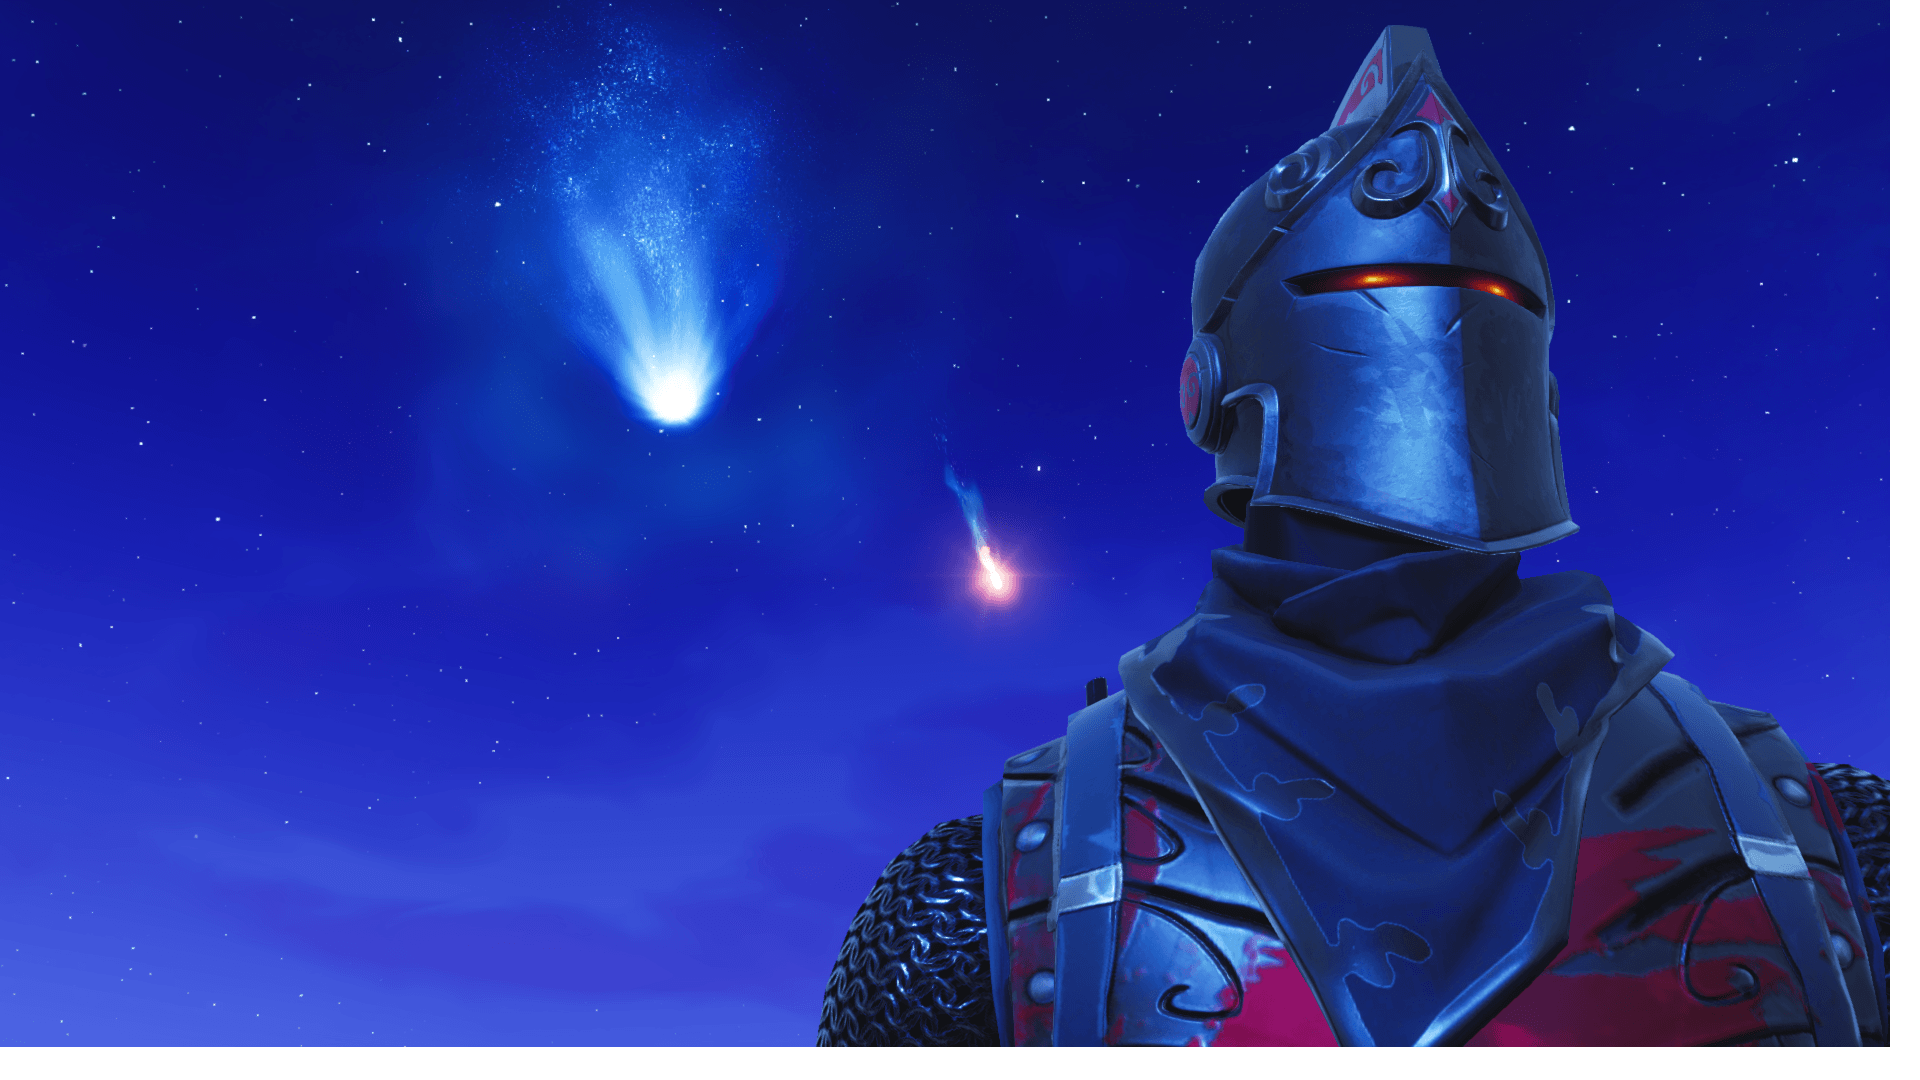 1920x1080 There are actually dicks on the Black Knight Scarf/Bandana : FortNiteBR